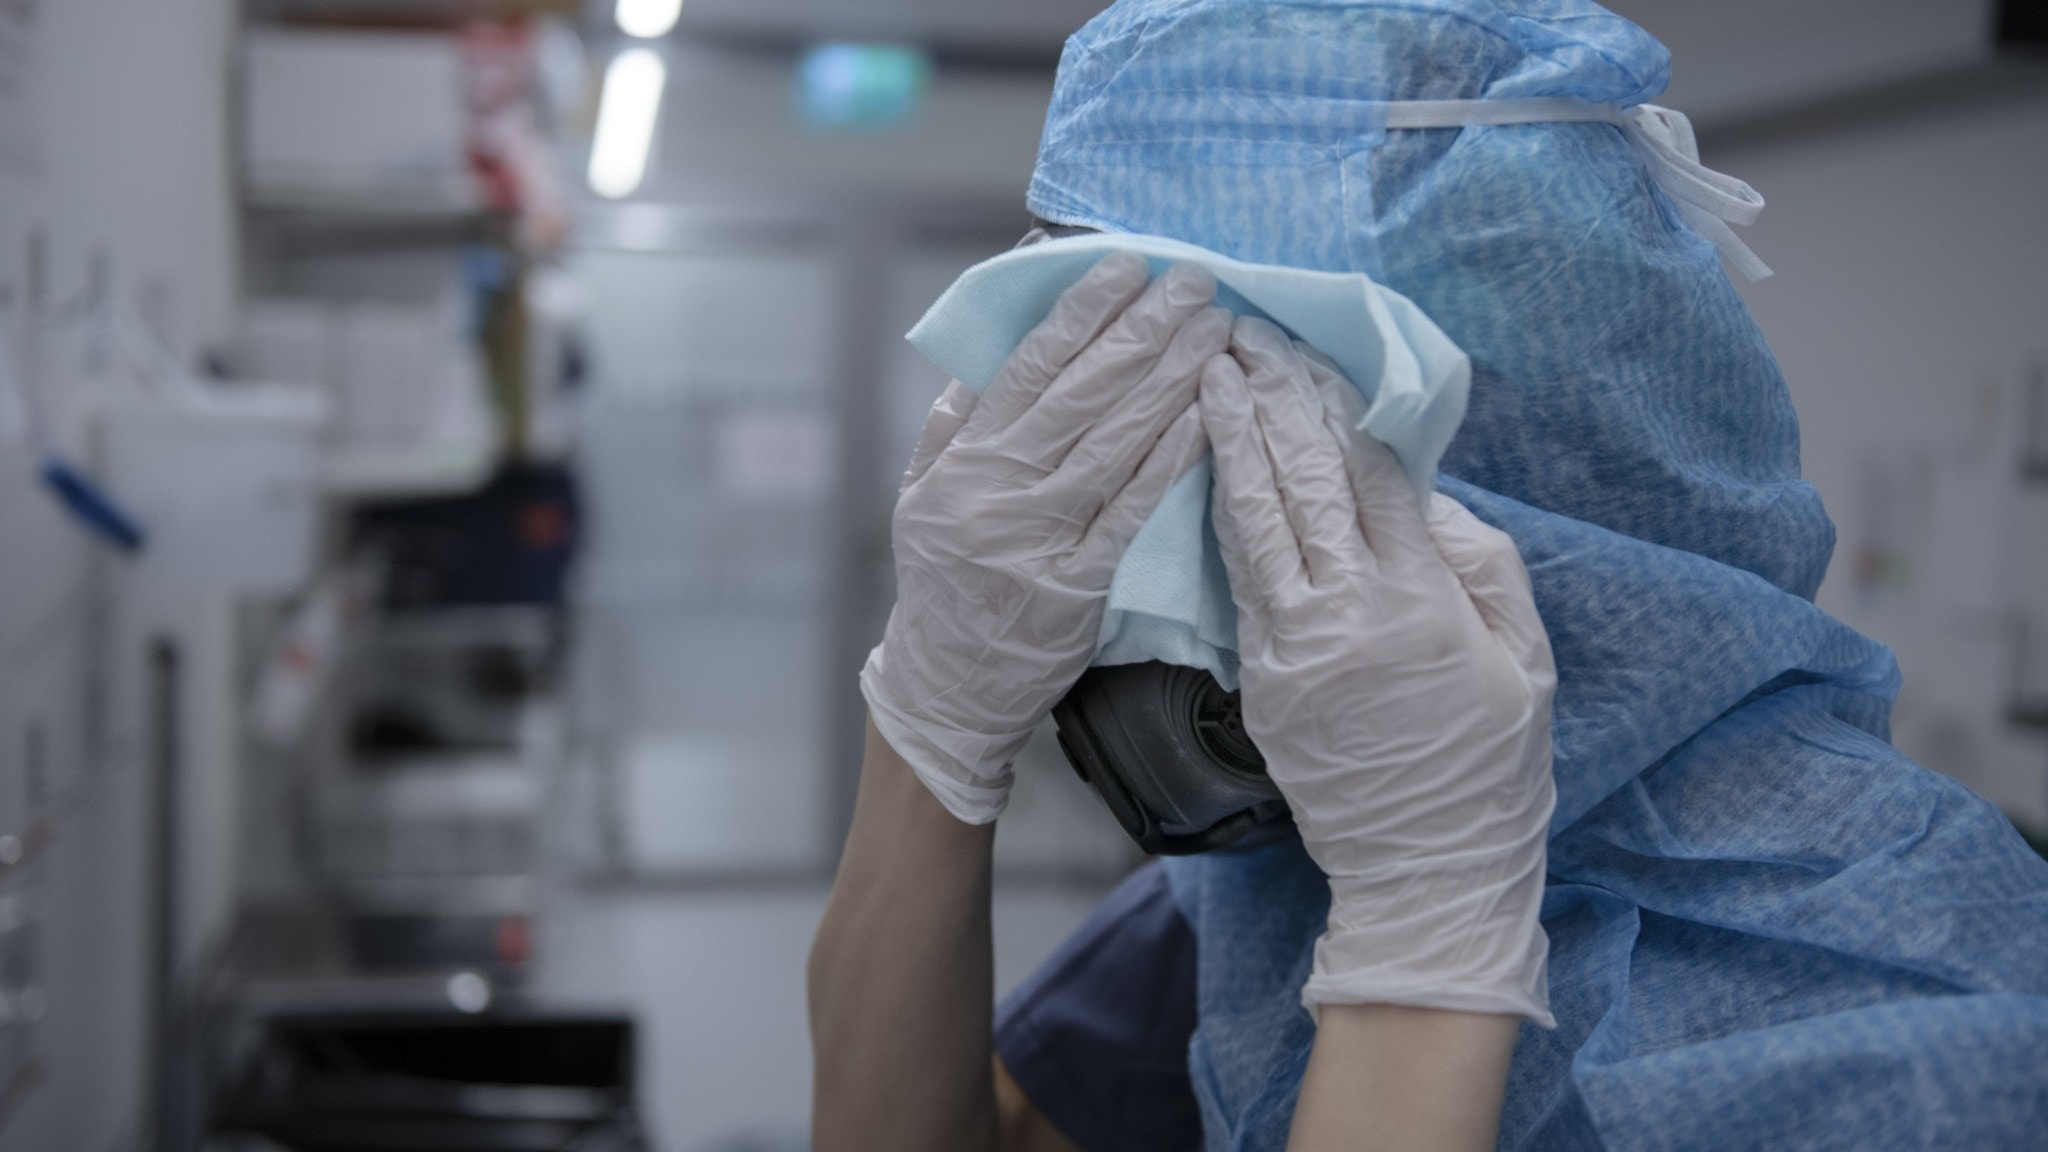 ICU staff in protective gear drying off the face shield.